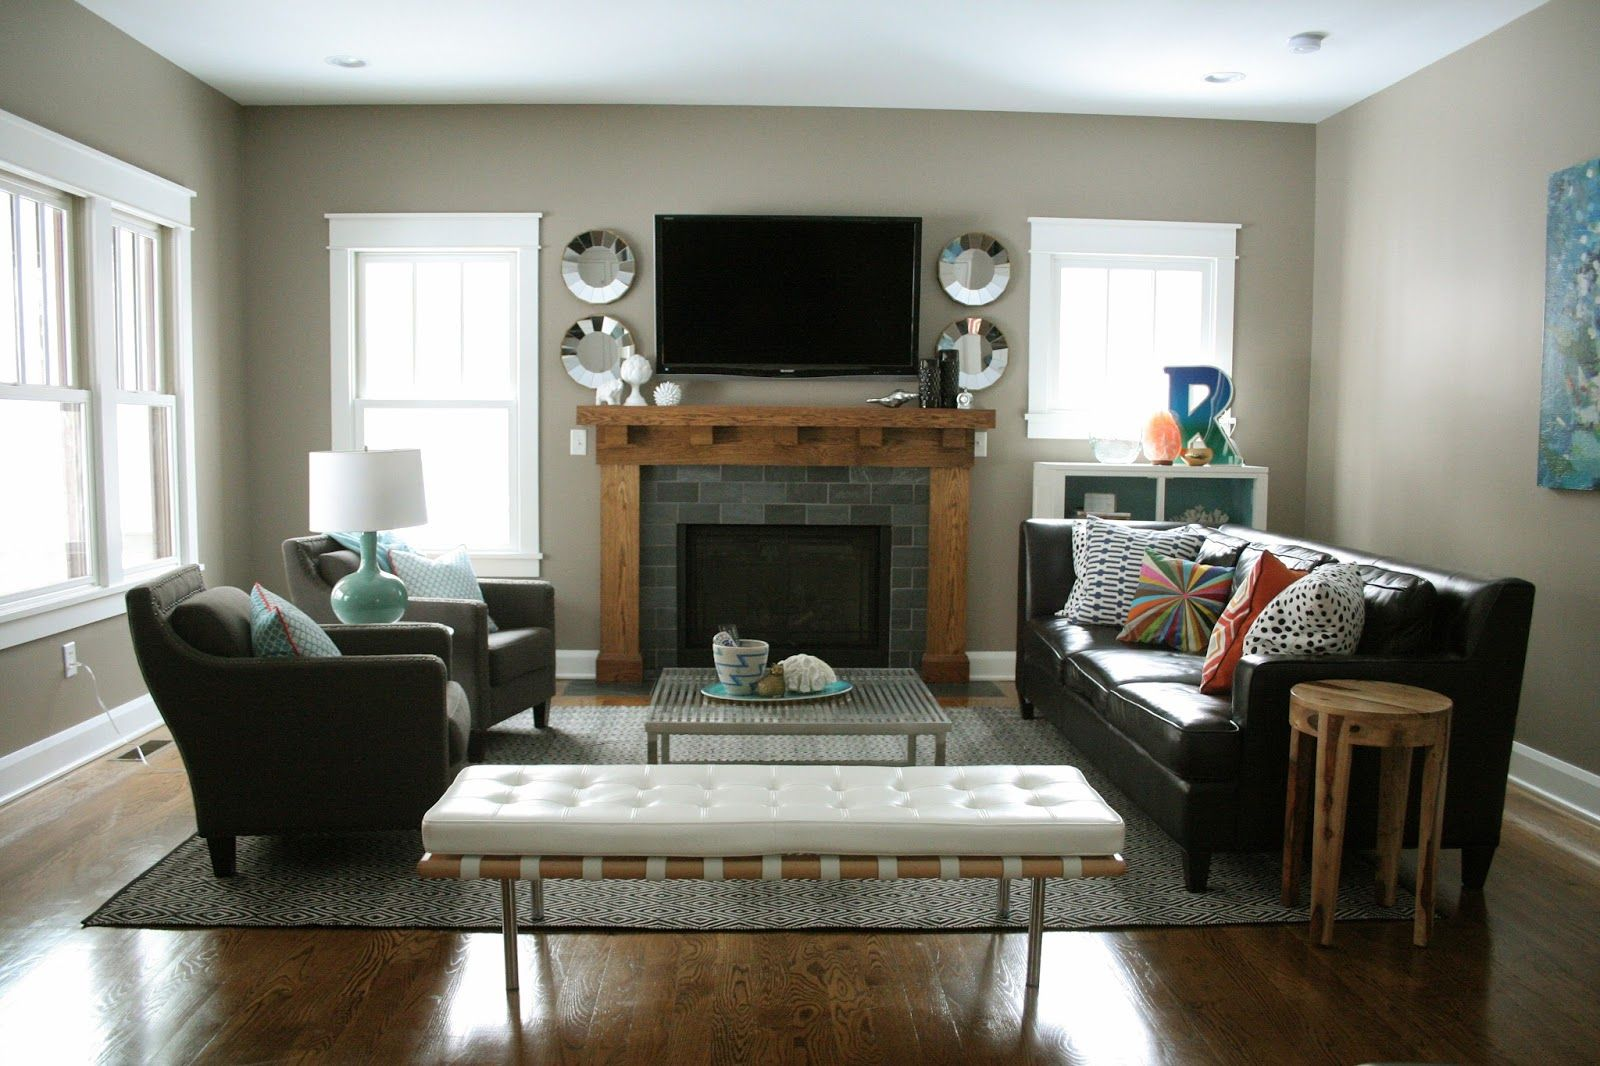 Living Room Furniture Arrangement With Fireplace Statue Of Living Room Furniture Arrangement Modern Living Room